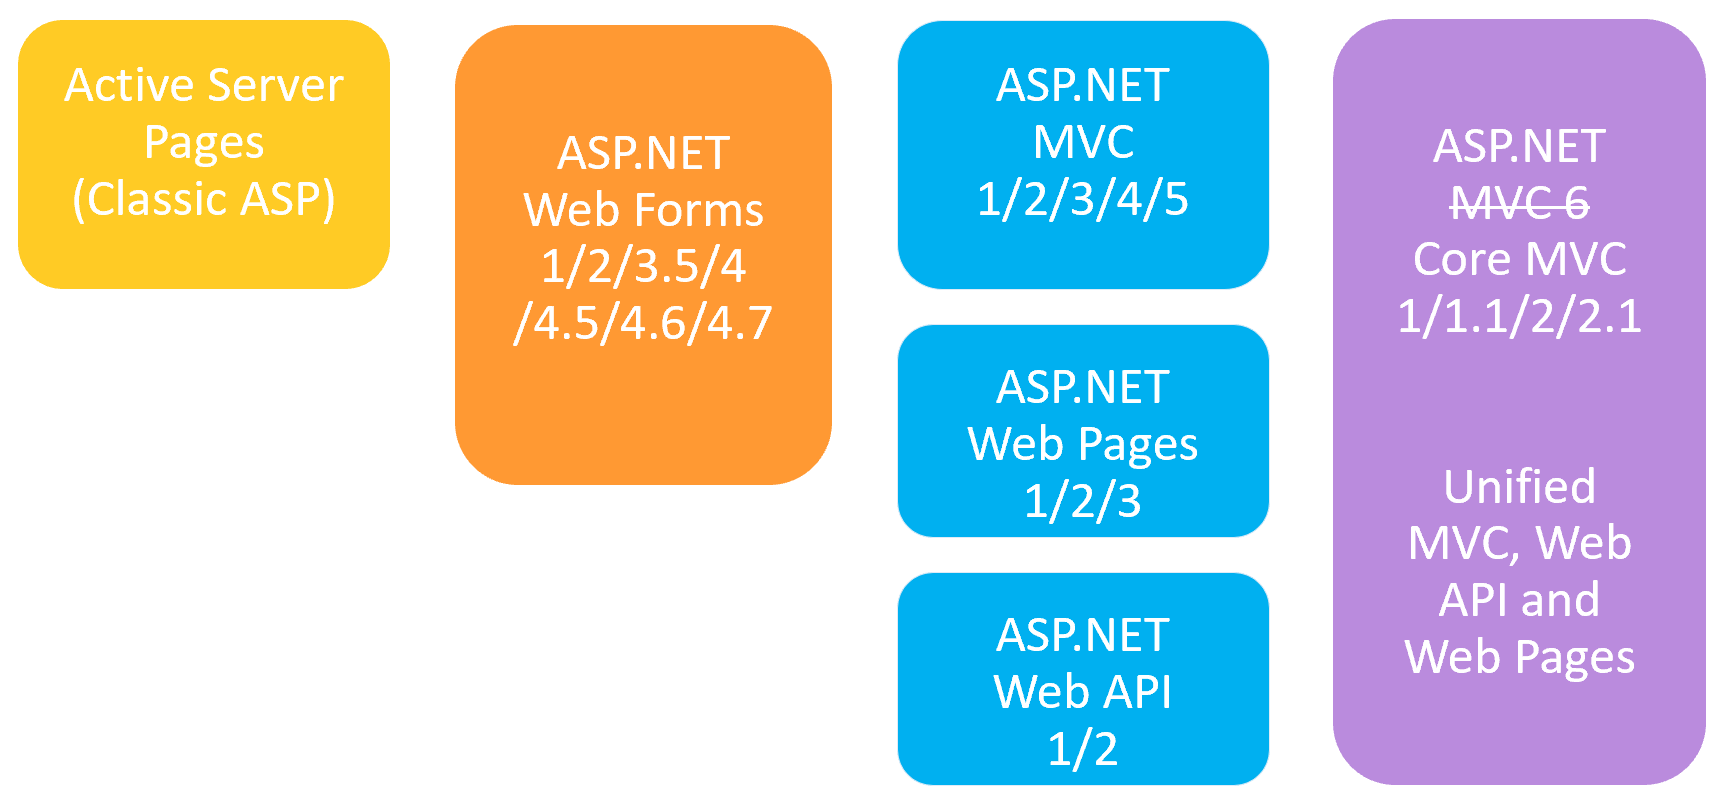 Evolution of ASP.NET Core